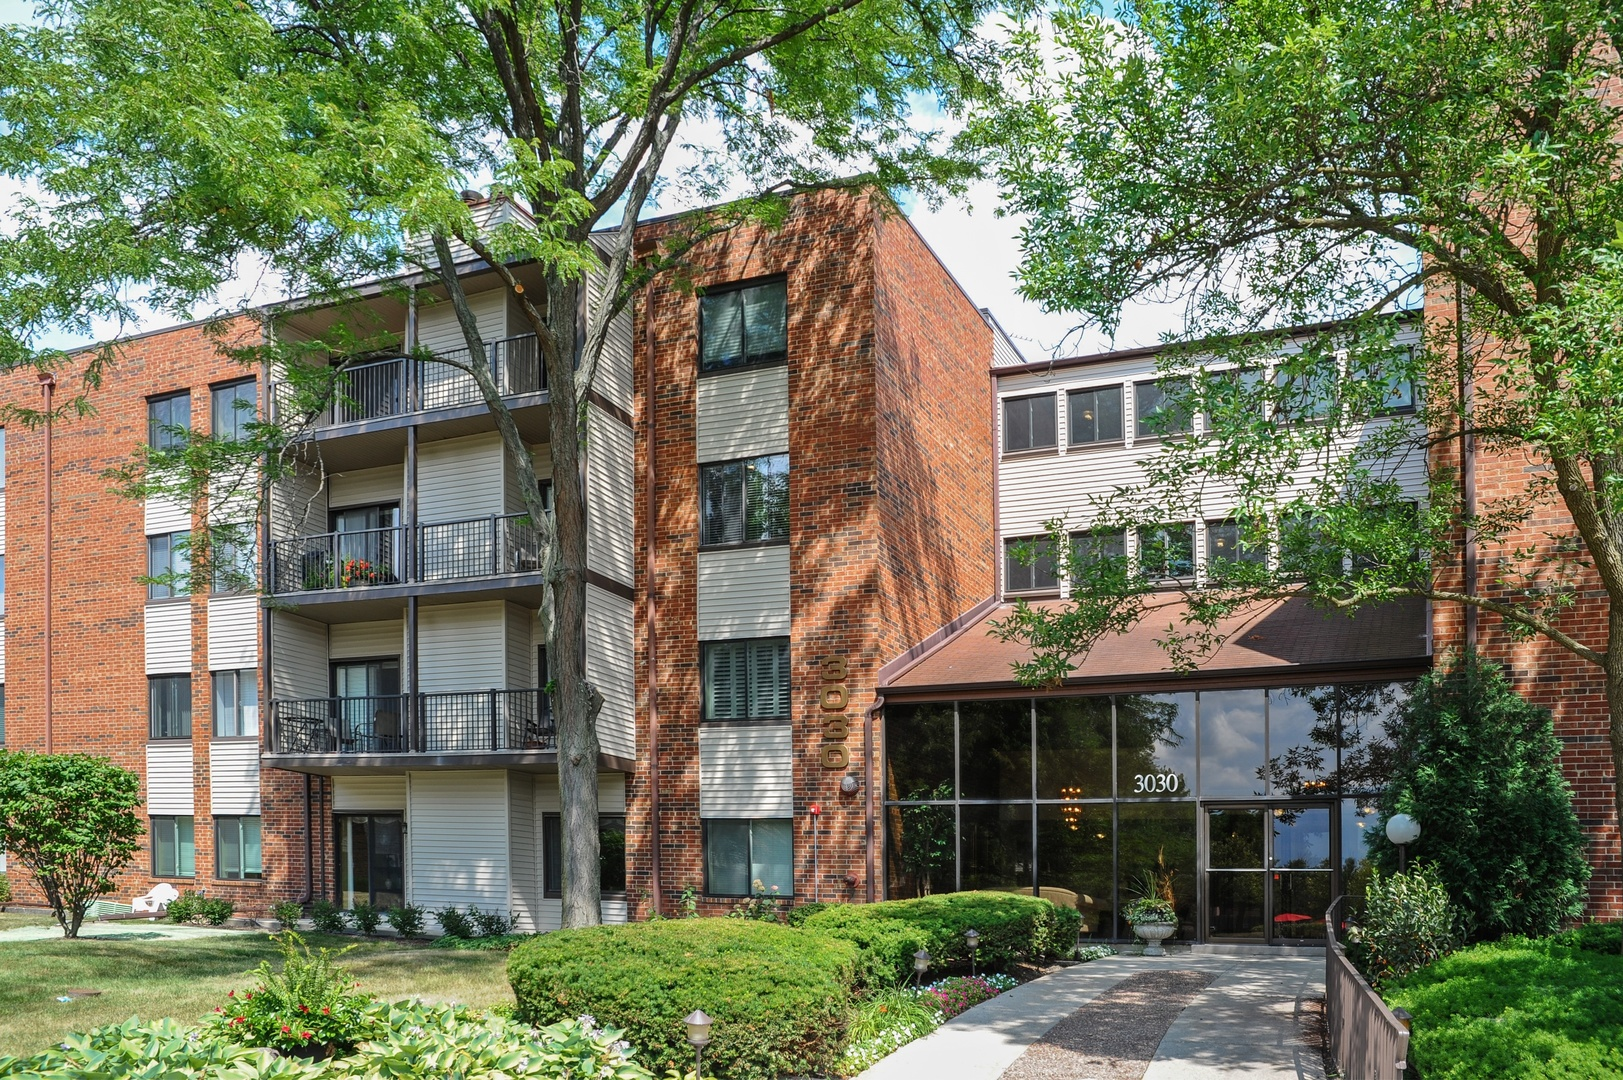 3030 Pheasant Creek Drive 202, Northbrook in Cook County, IL 60062 Home for Sale